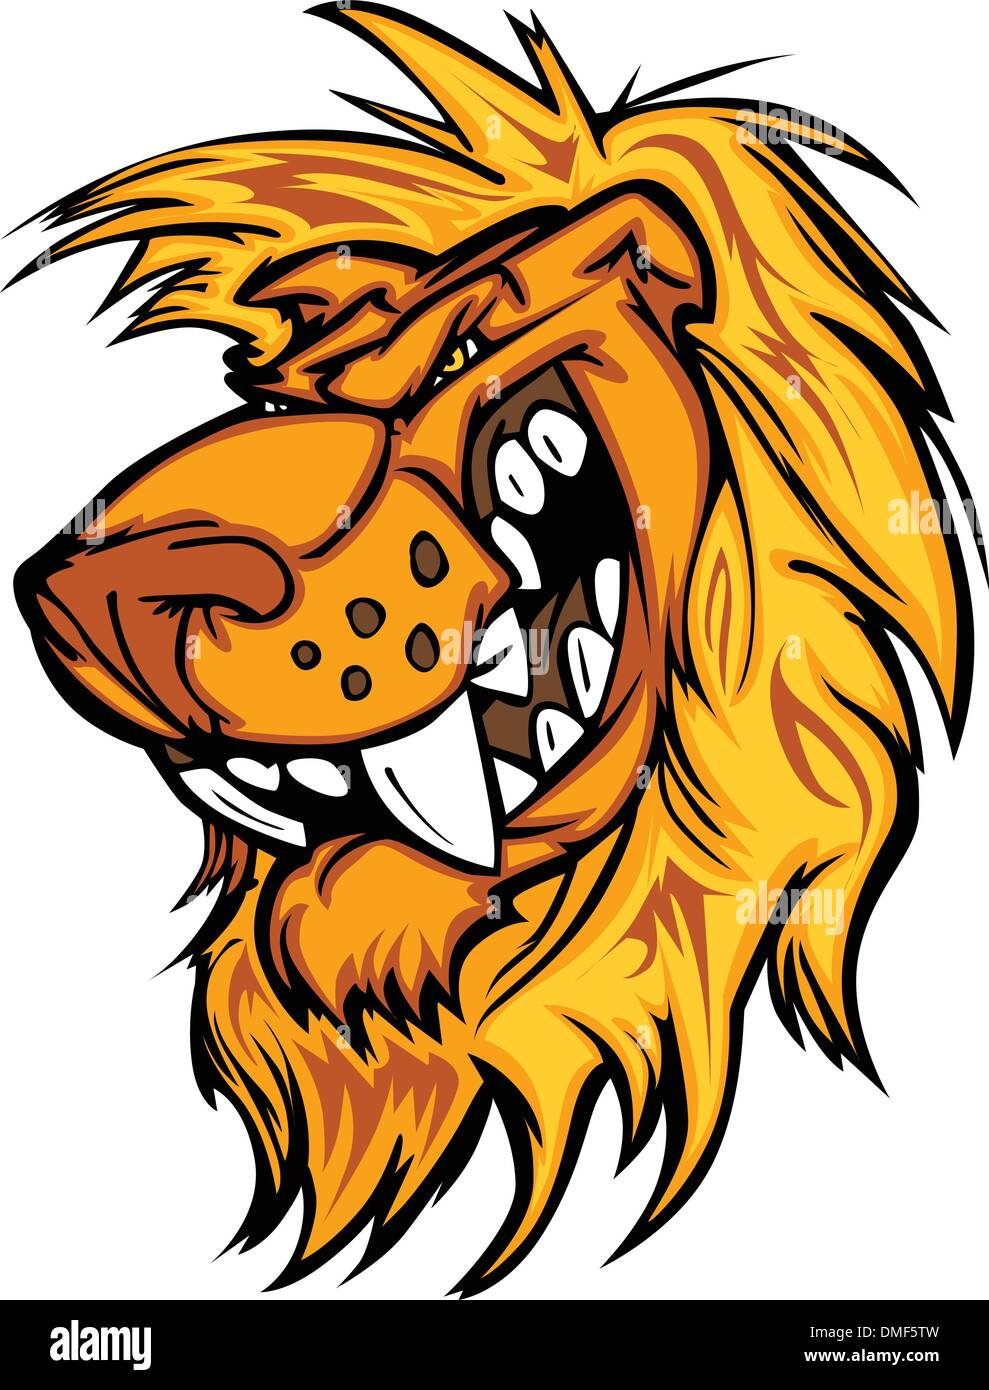 Snarling Cartoon Lion Mascot Vector Graphic - Stock Vector